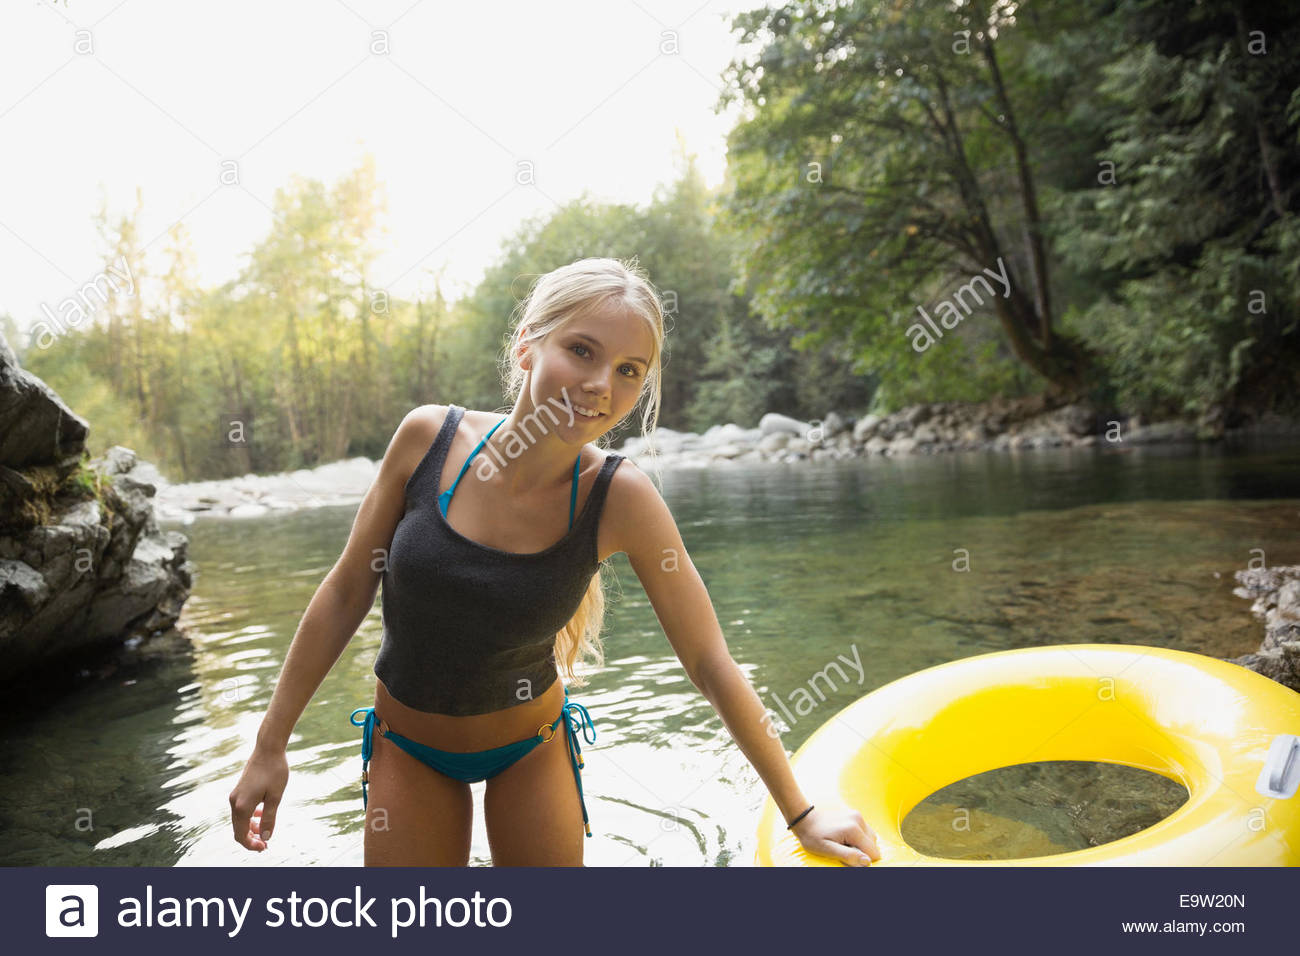 Young woman with inflatable ring at swimming hole - Stock Image